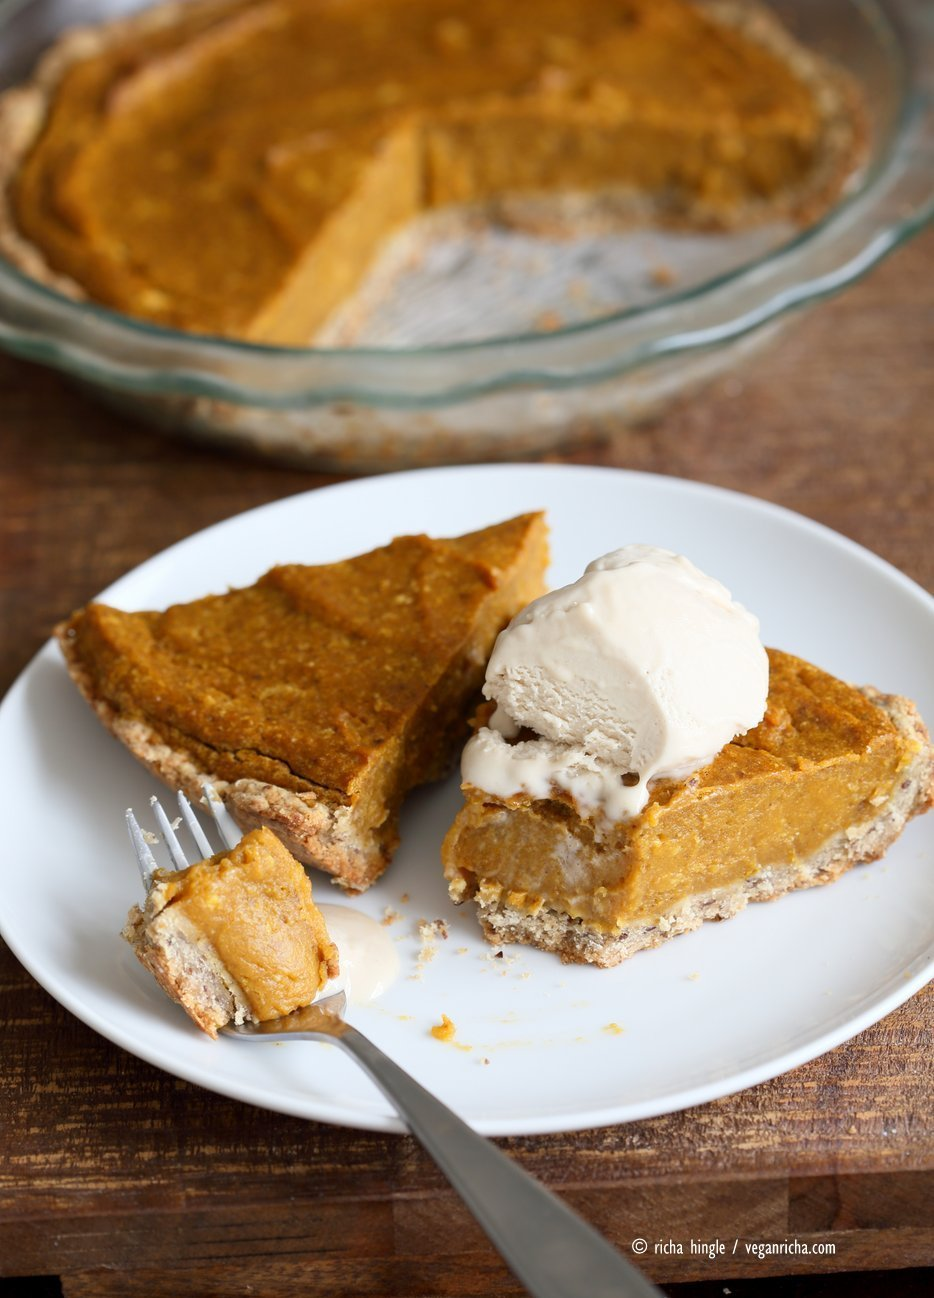 Easy Vegan Pumpkin Pie with a few ingredients and a rustic crust. Can be made gluten-free. Serve with whipped coconut cream or vanilla ice cream. | VeganRicha,com